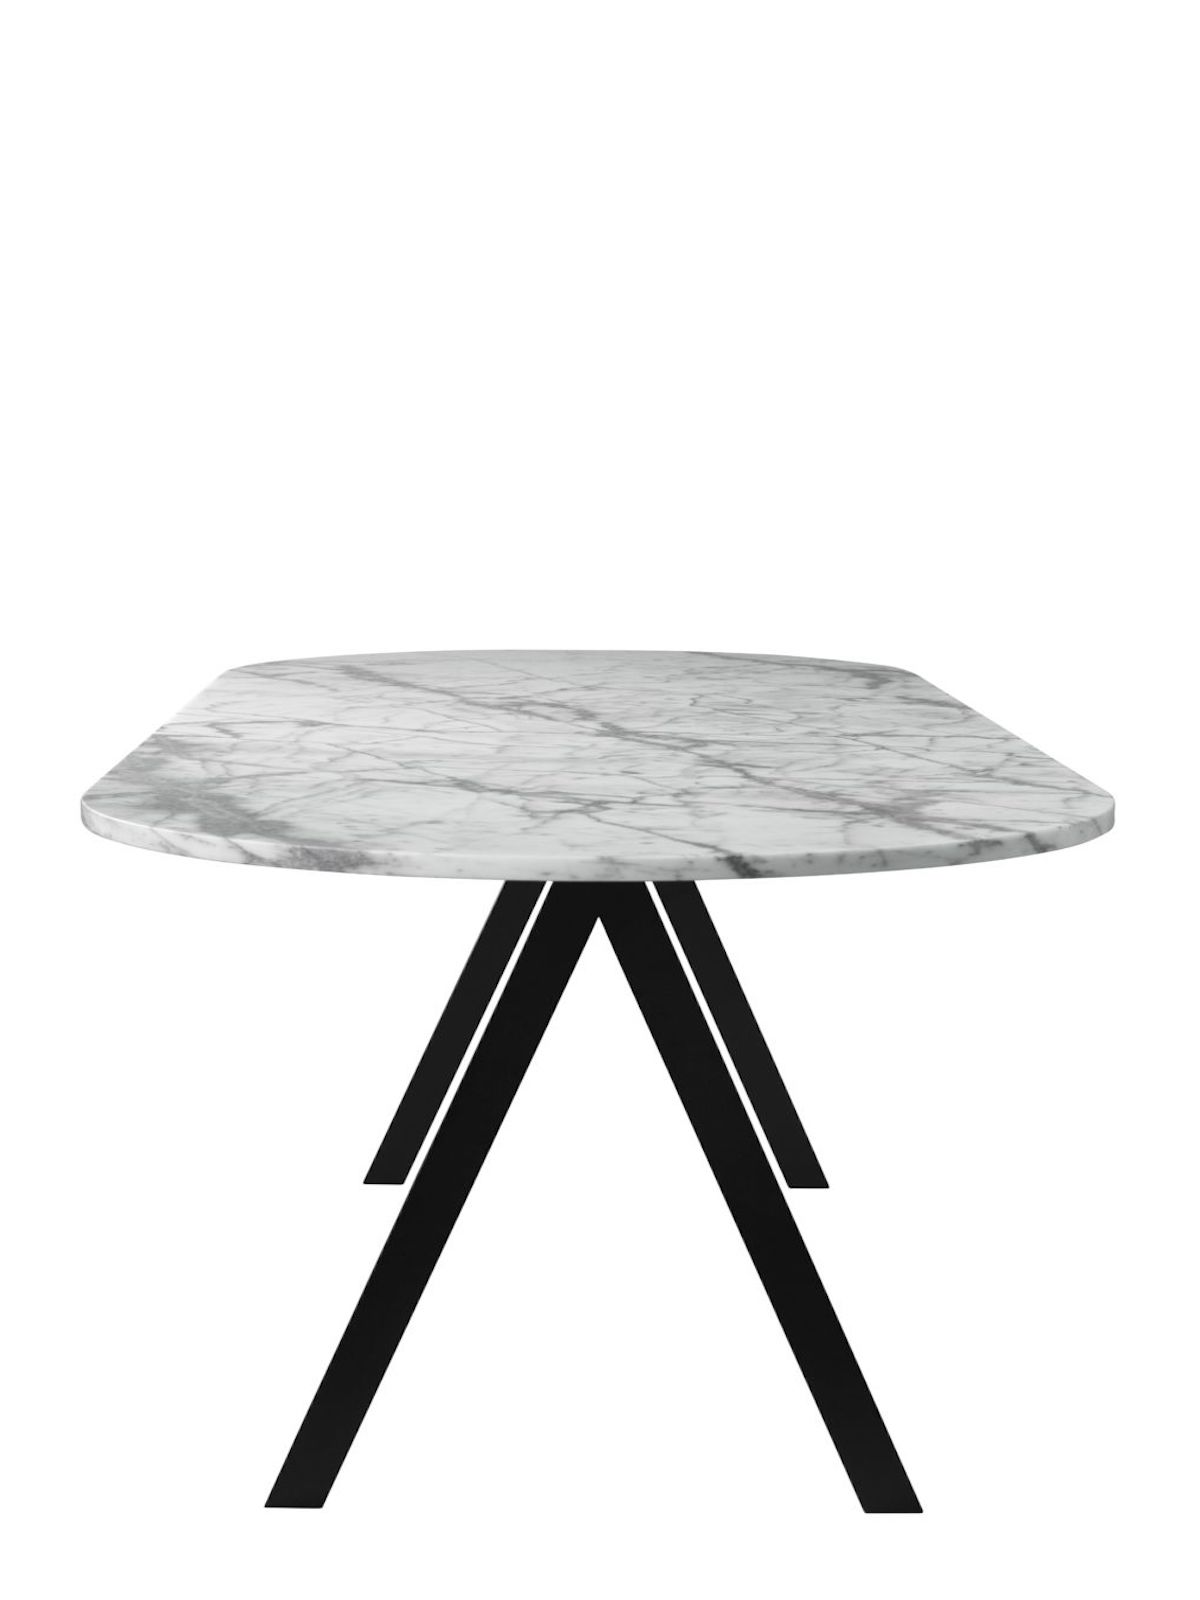 Friends & Founders Saw Rounded White Marble